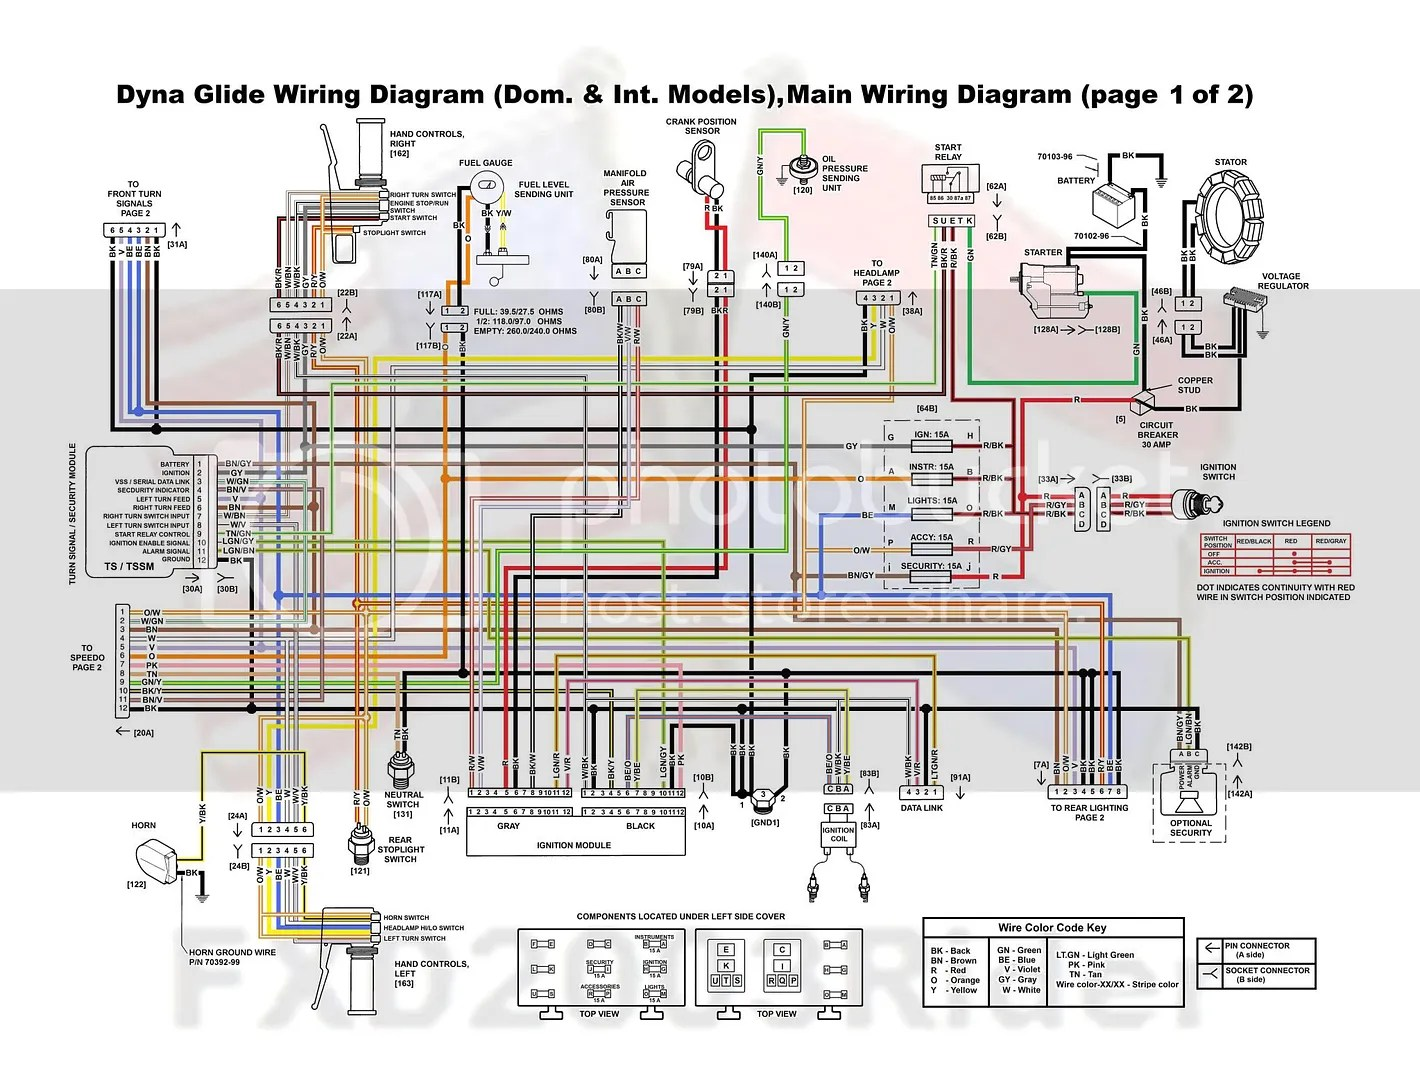 harley softail wiring harness wiring diagrams konsult wiring diagram harley softail 200 harley softail wiring harness [ 1420 x 1080 Pixel ]